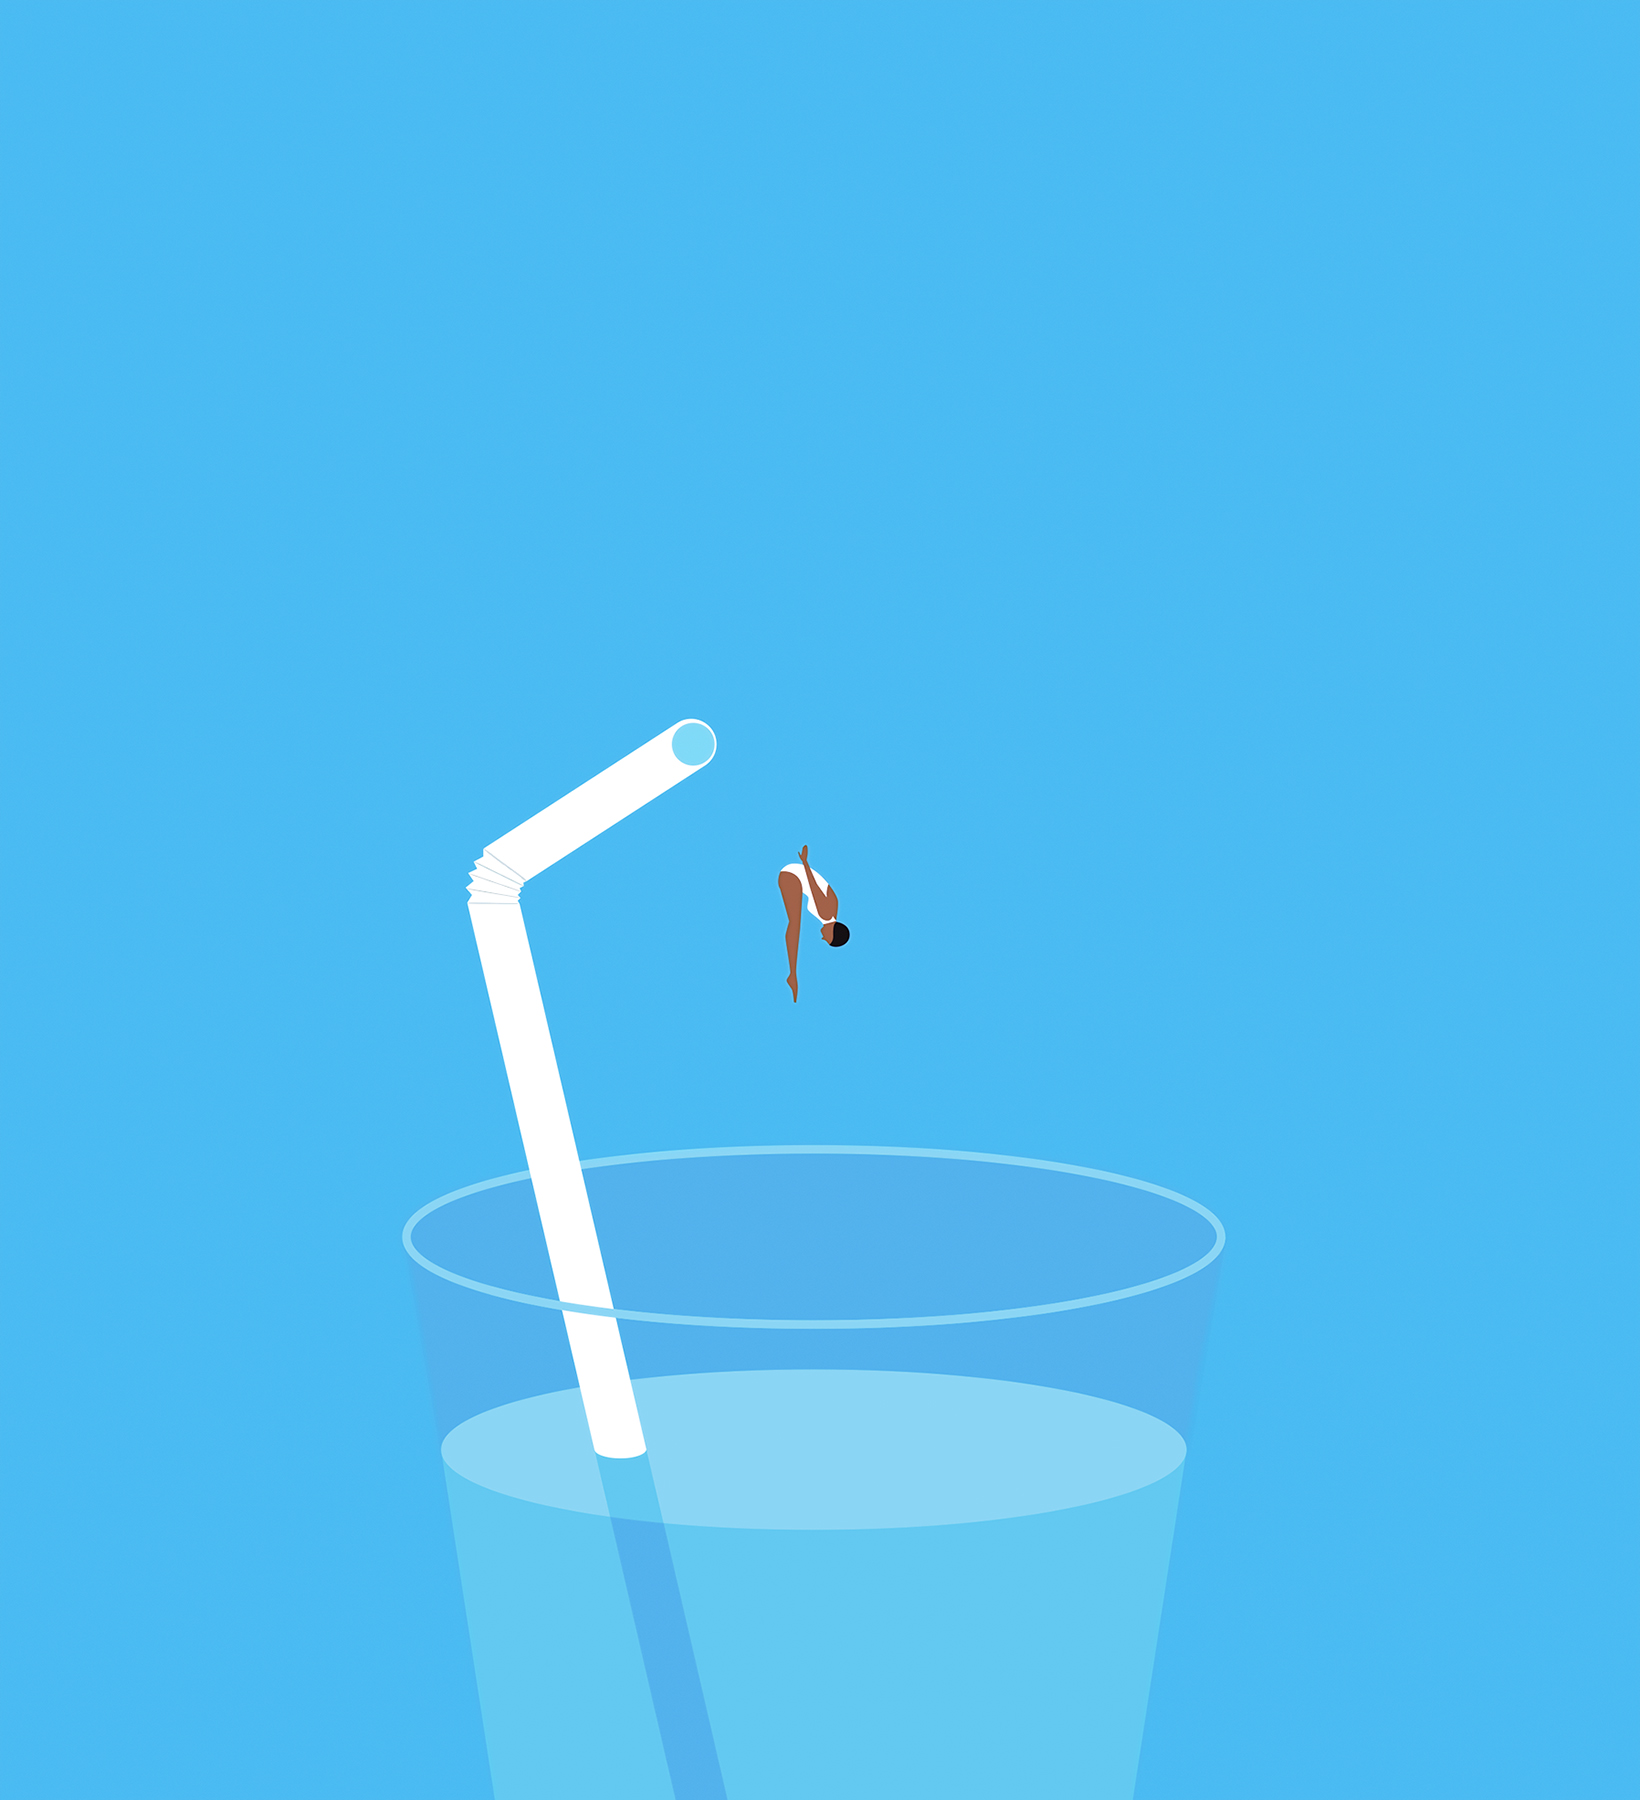 Illustration: Woman diving into glass of water